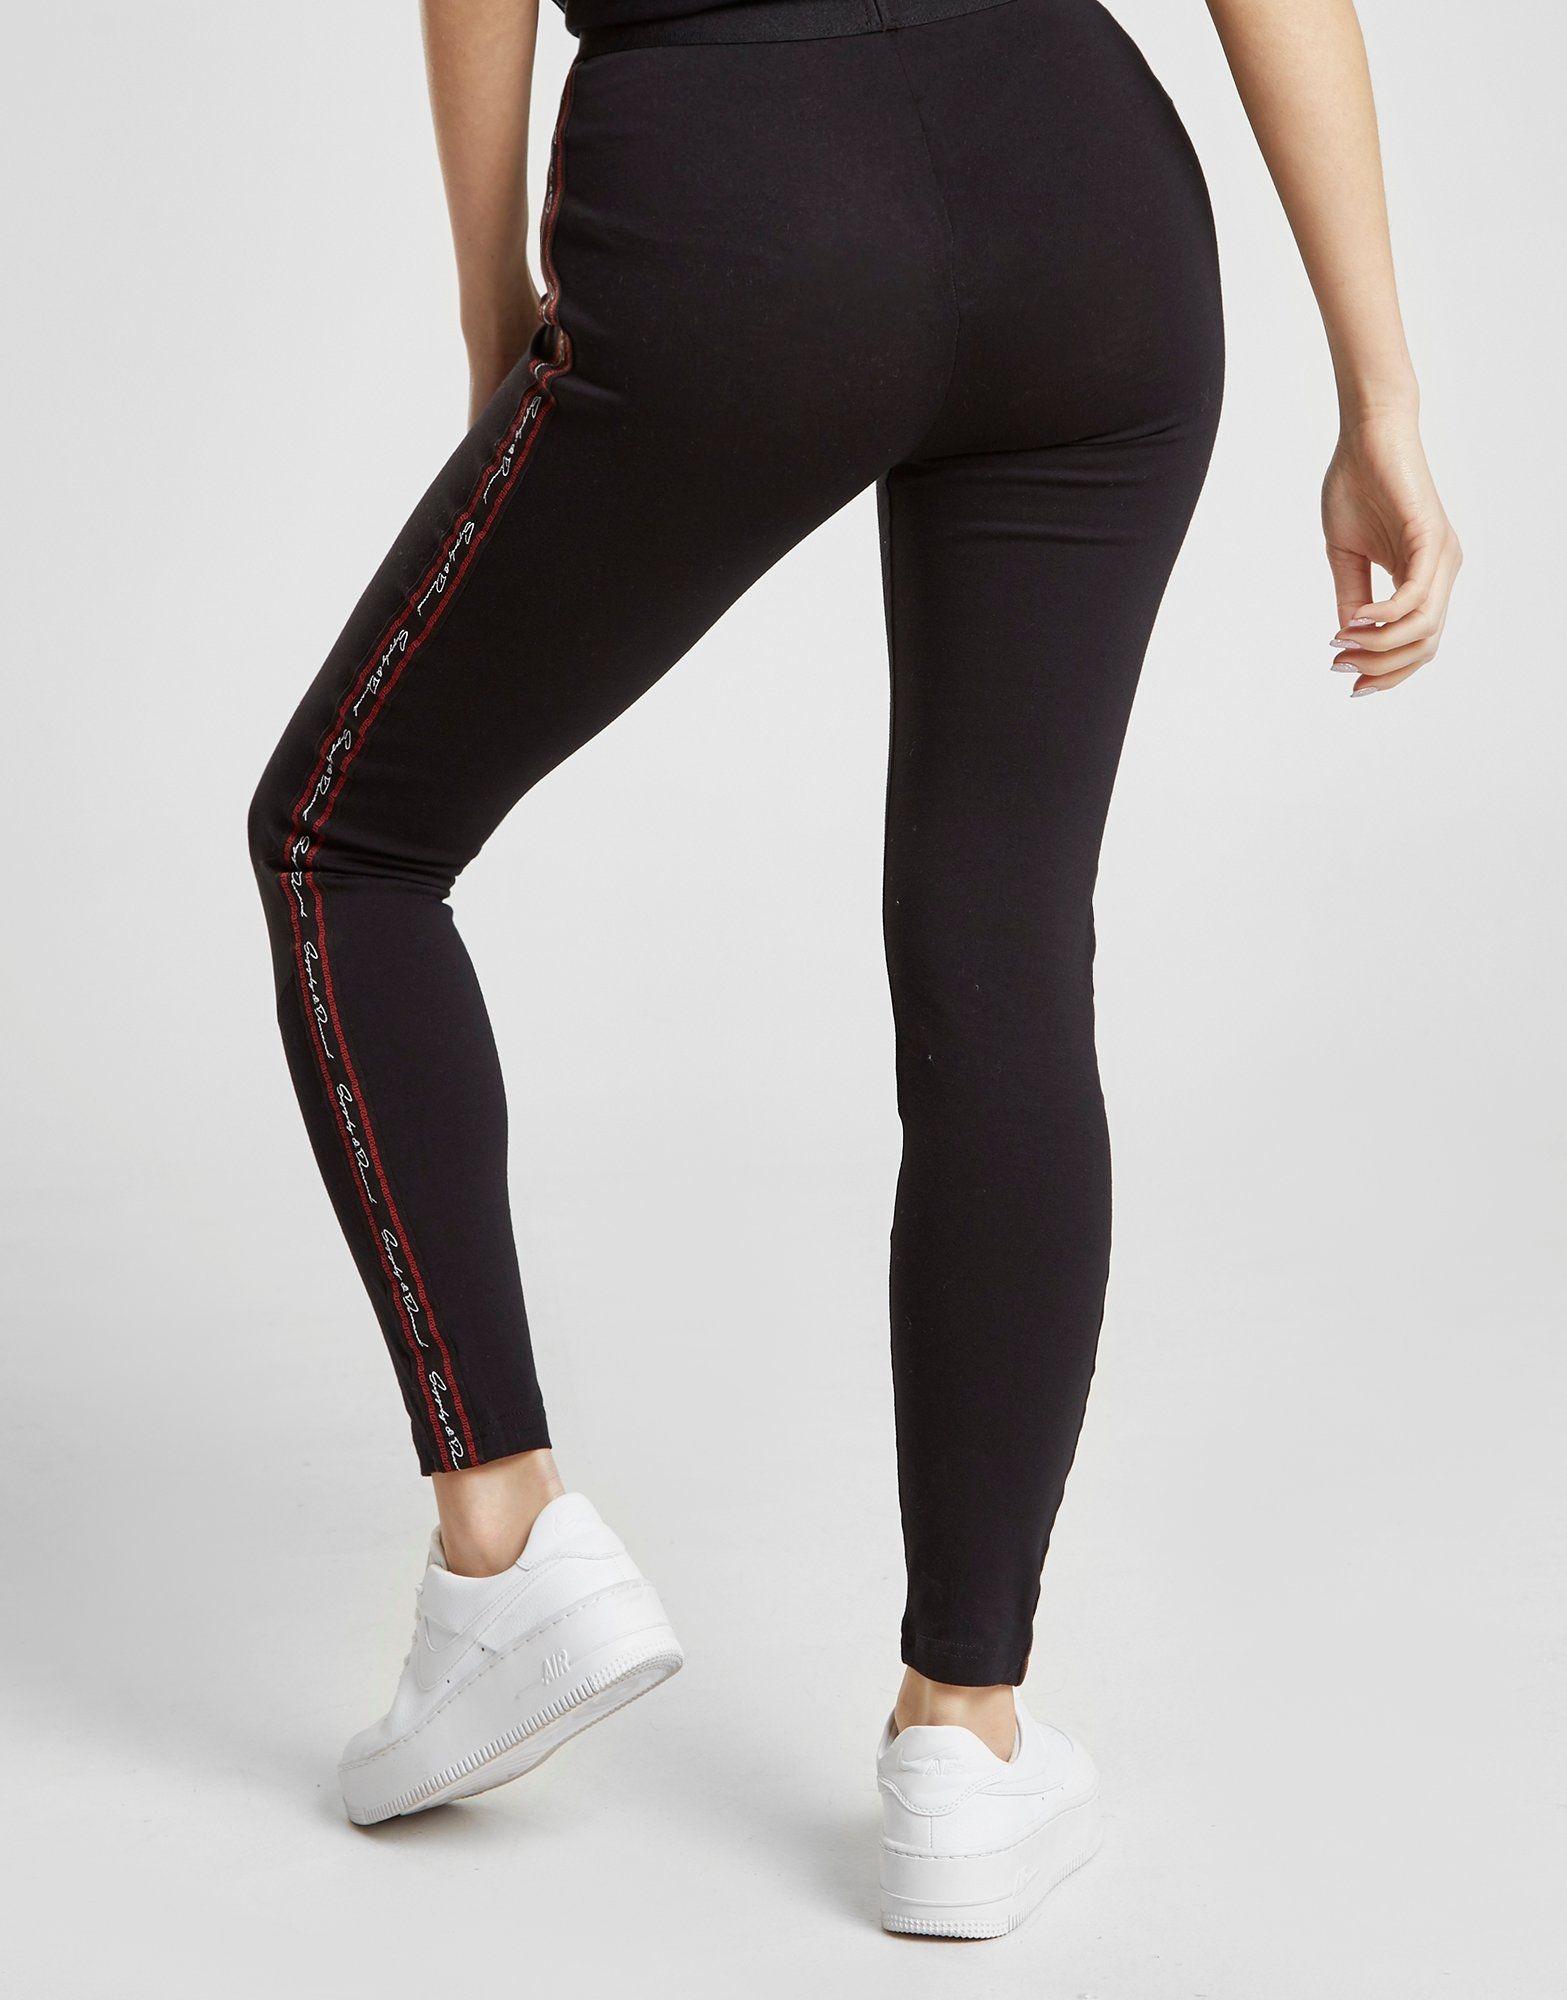 Supply & Demand Meander Mesh Leggings